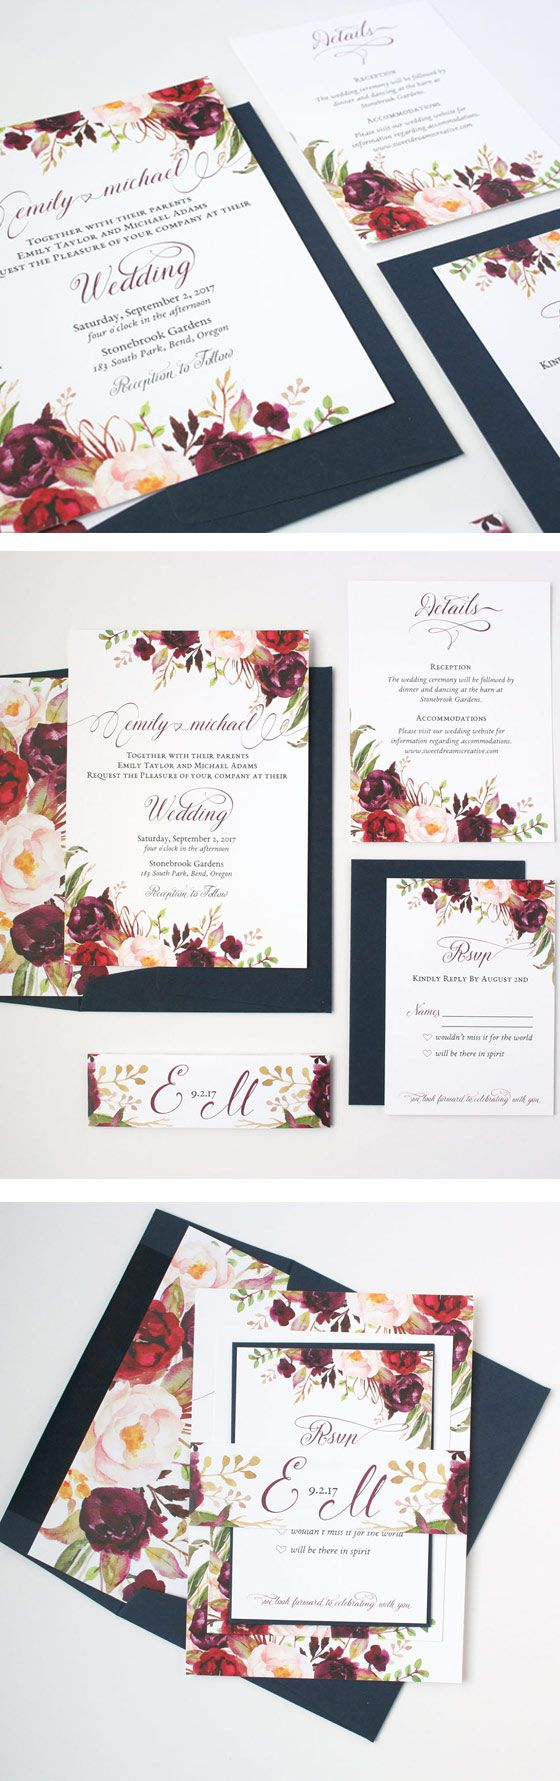 Lovely navy and burgundy wedding invitations 8441